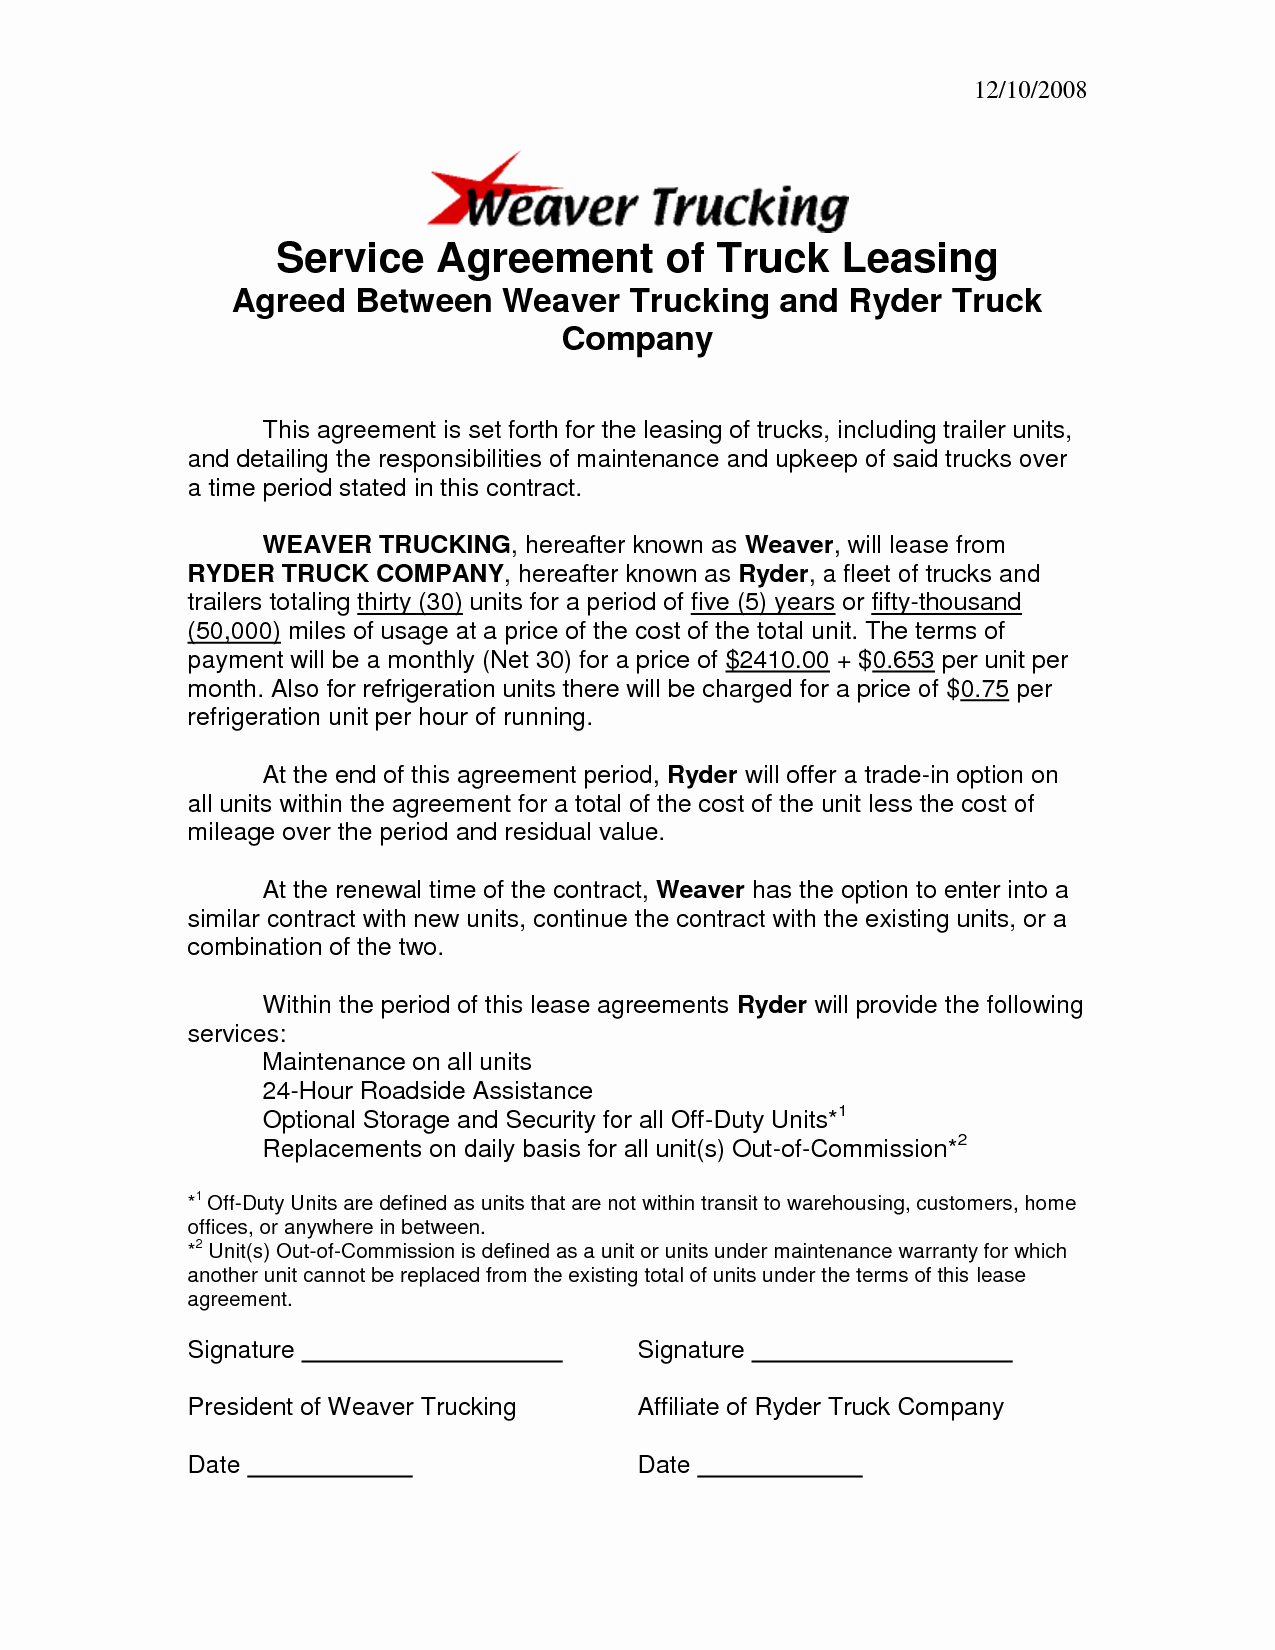 Truck Lease Agreement Template Luxury Best S Of Sample Truck Lease Pany Truck Lease